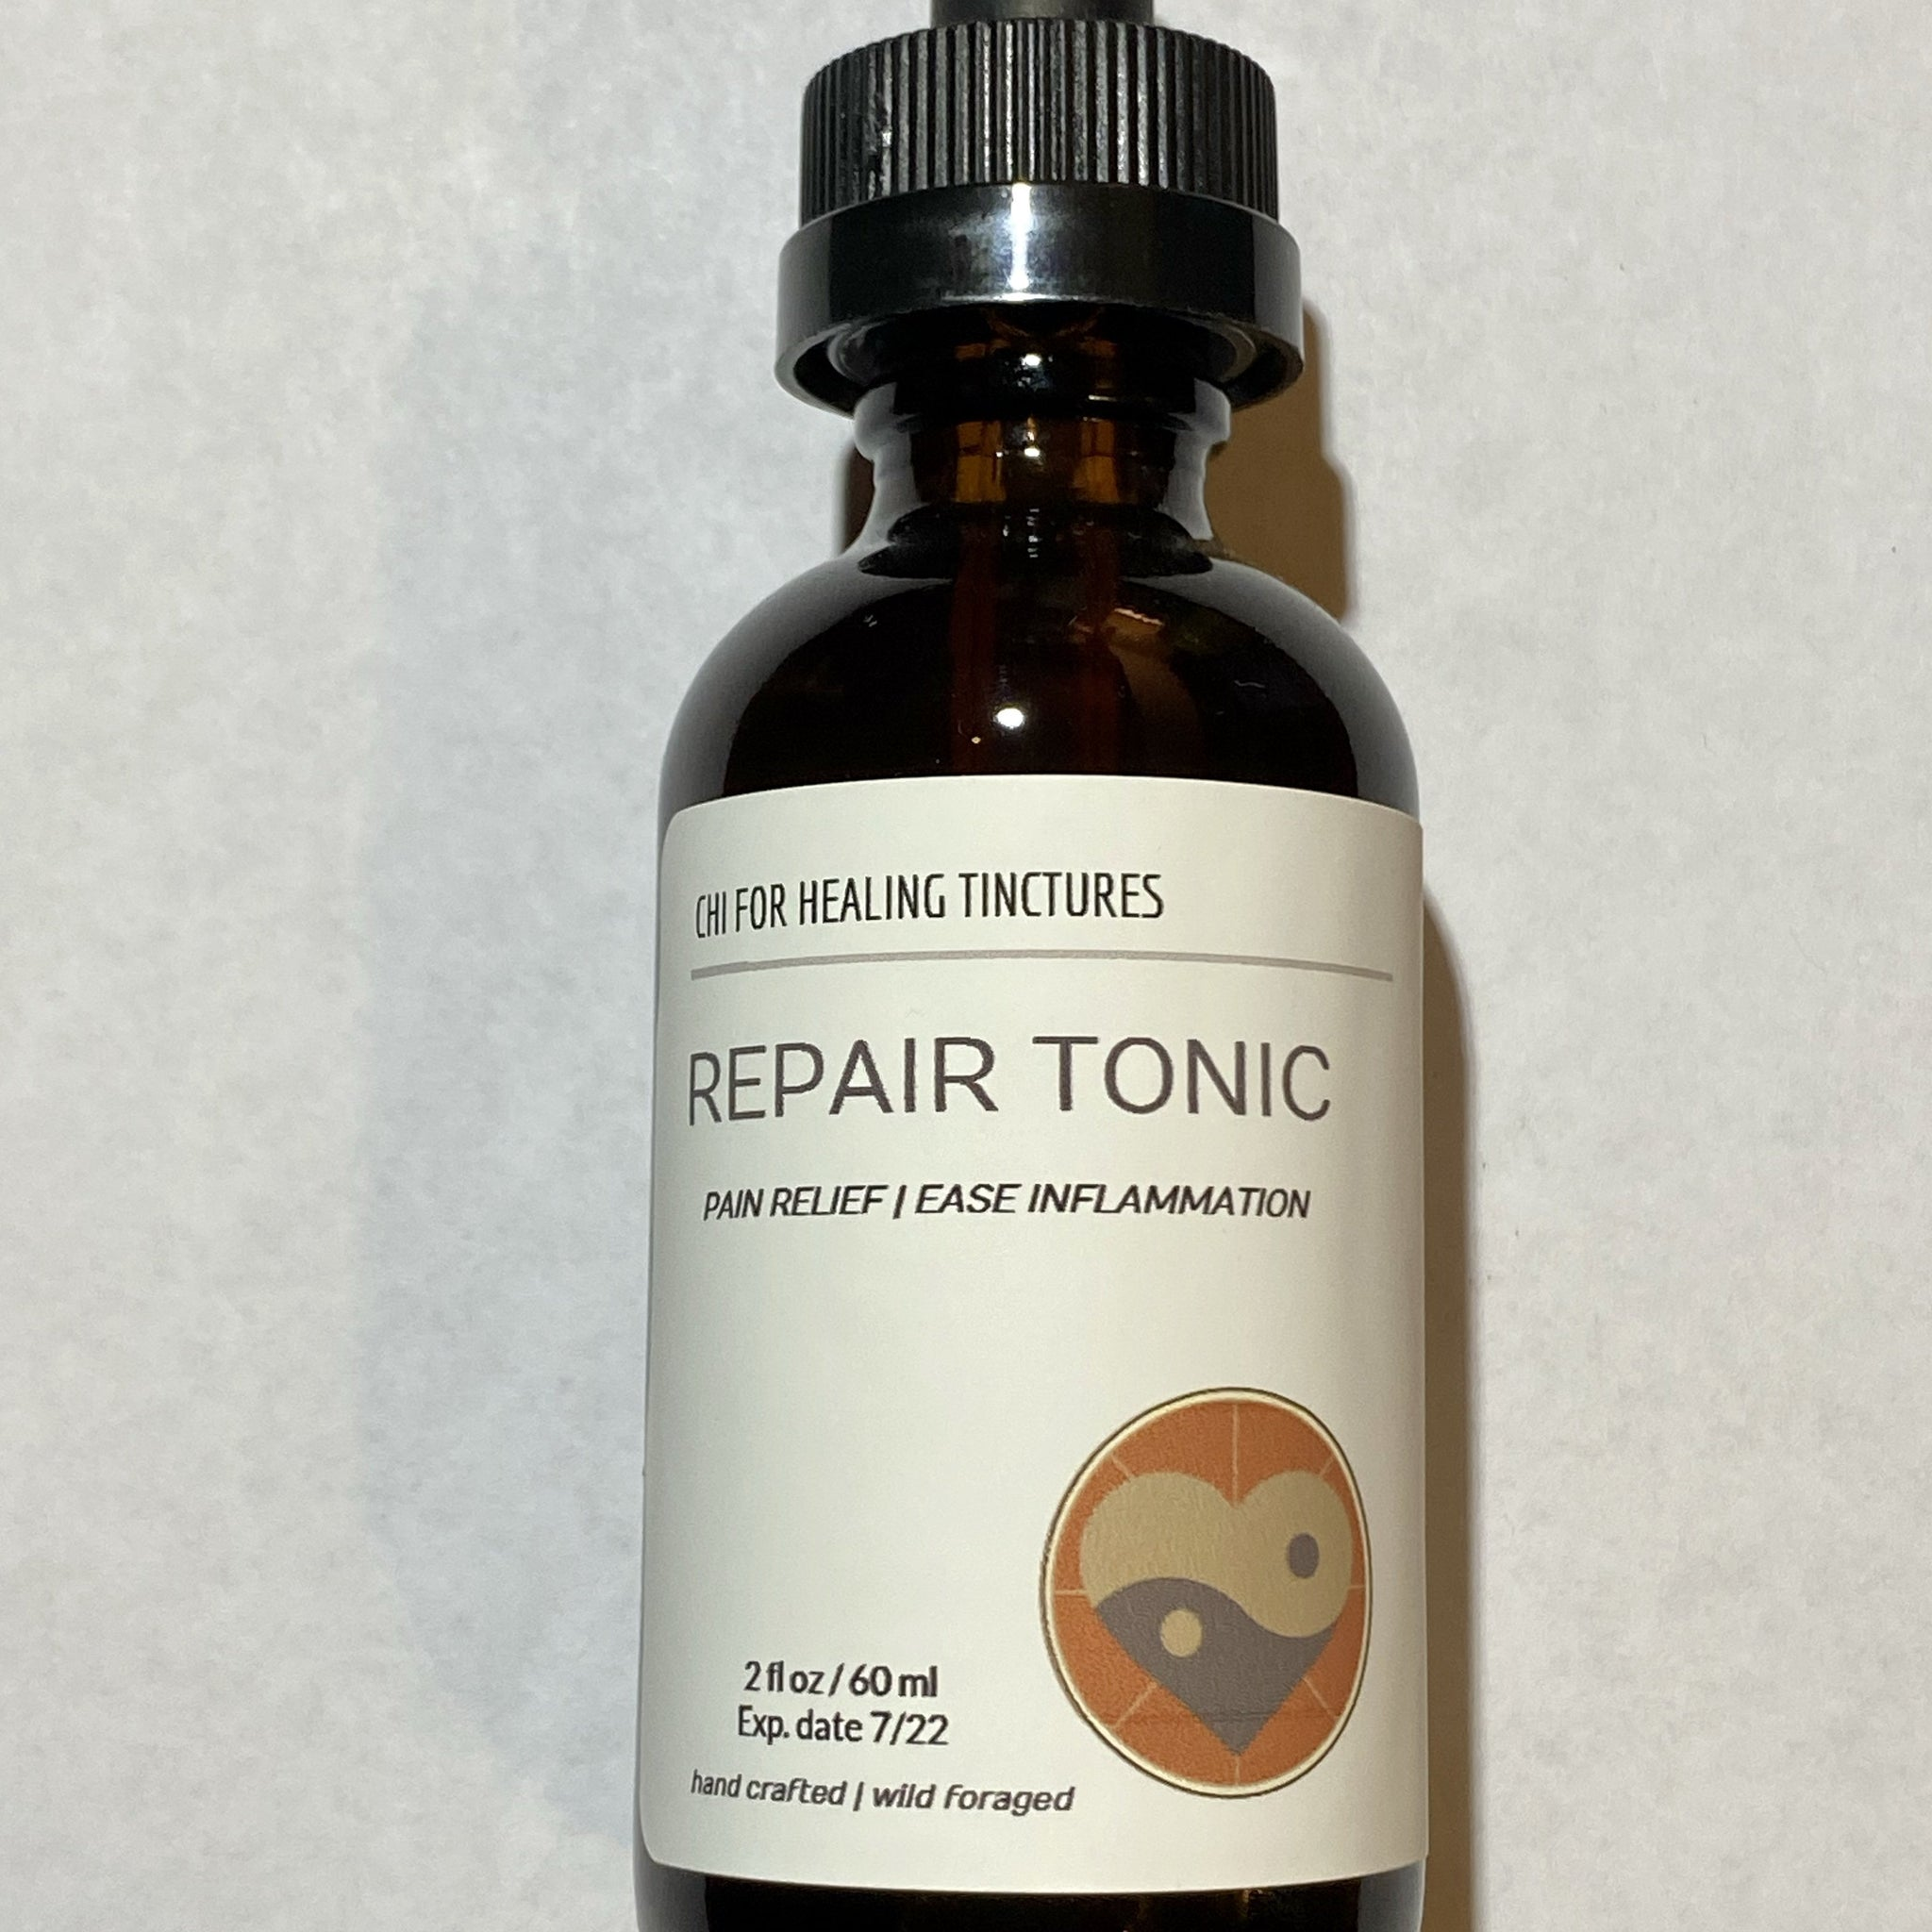 Repair Tonic Tincture for Pain - Chi for Healing